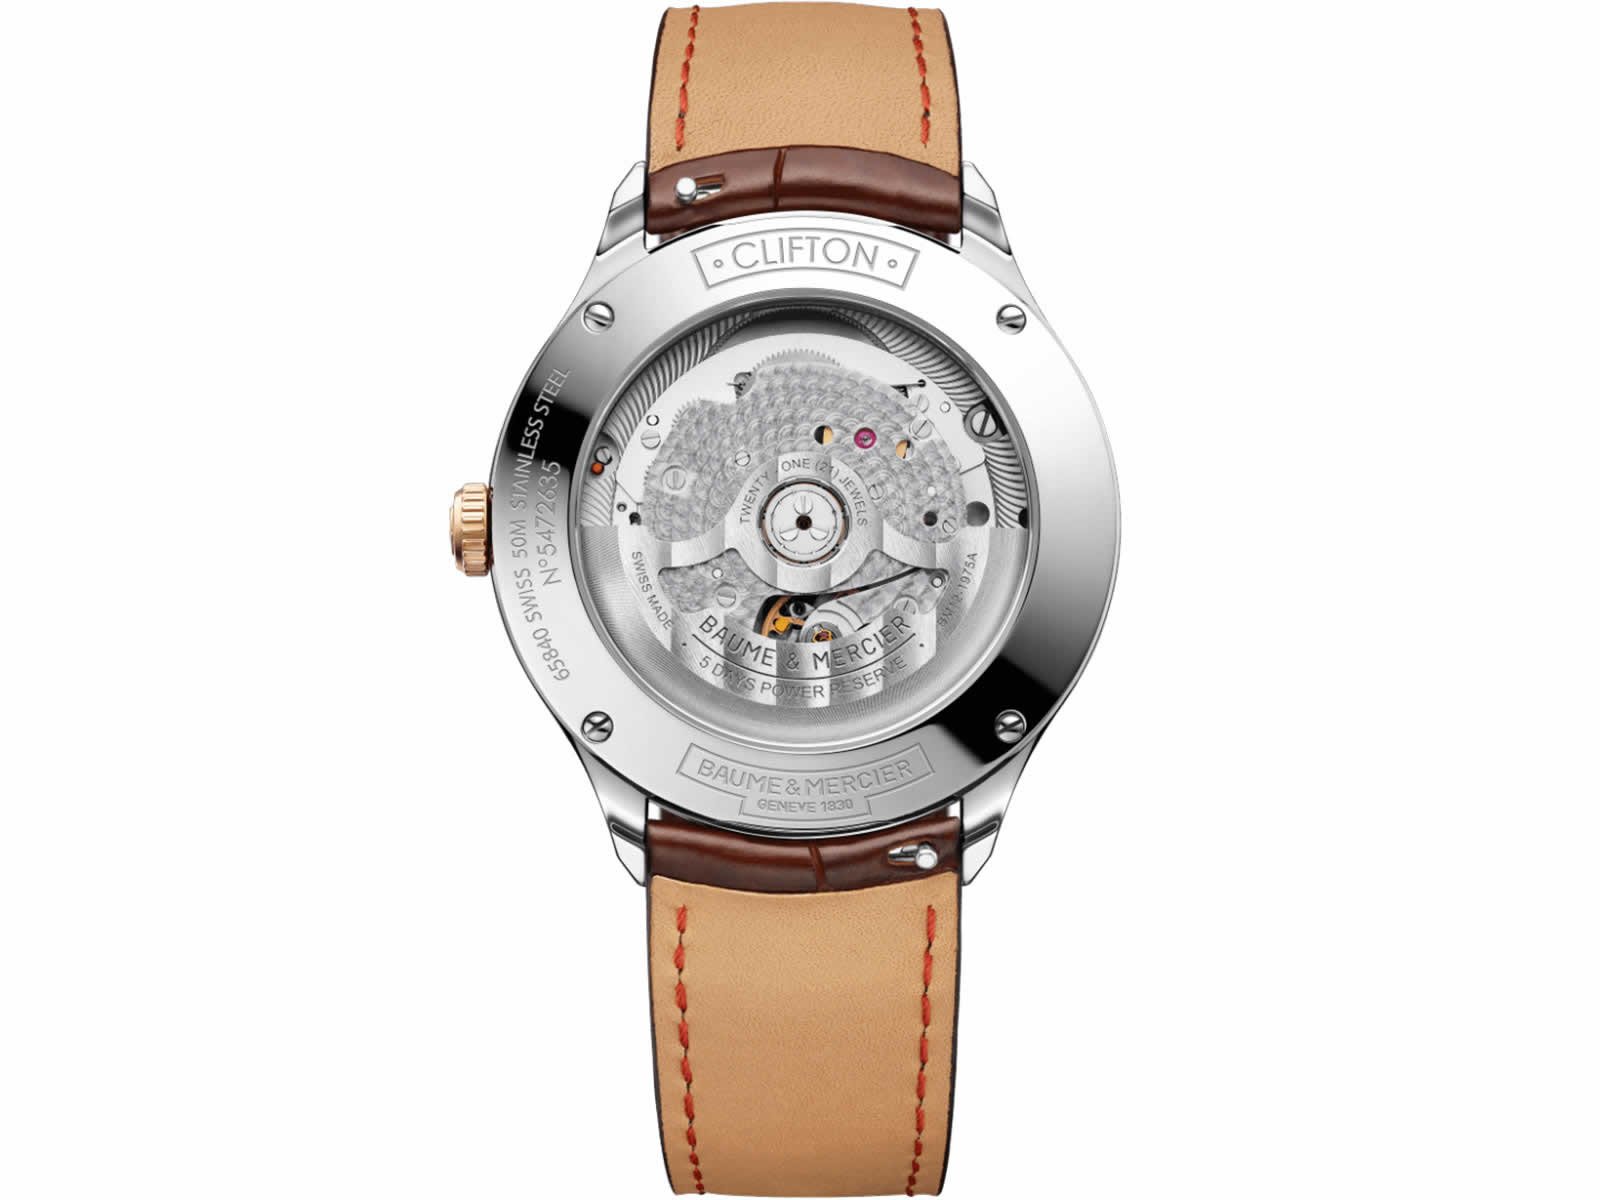 10401-Baume-Mercier-Clifton-Baumatic-Collection-Sihh2018-Brown-Back.jpg